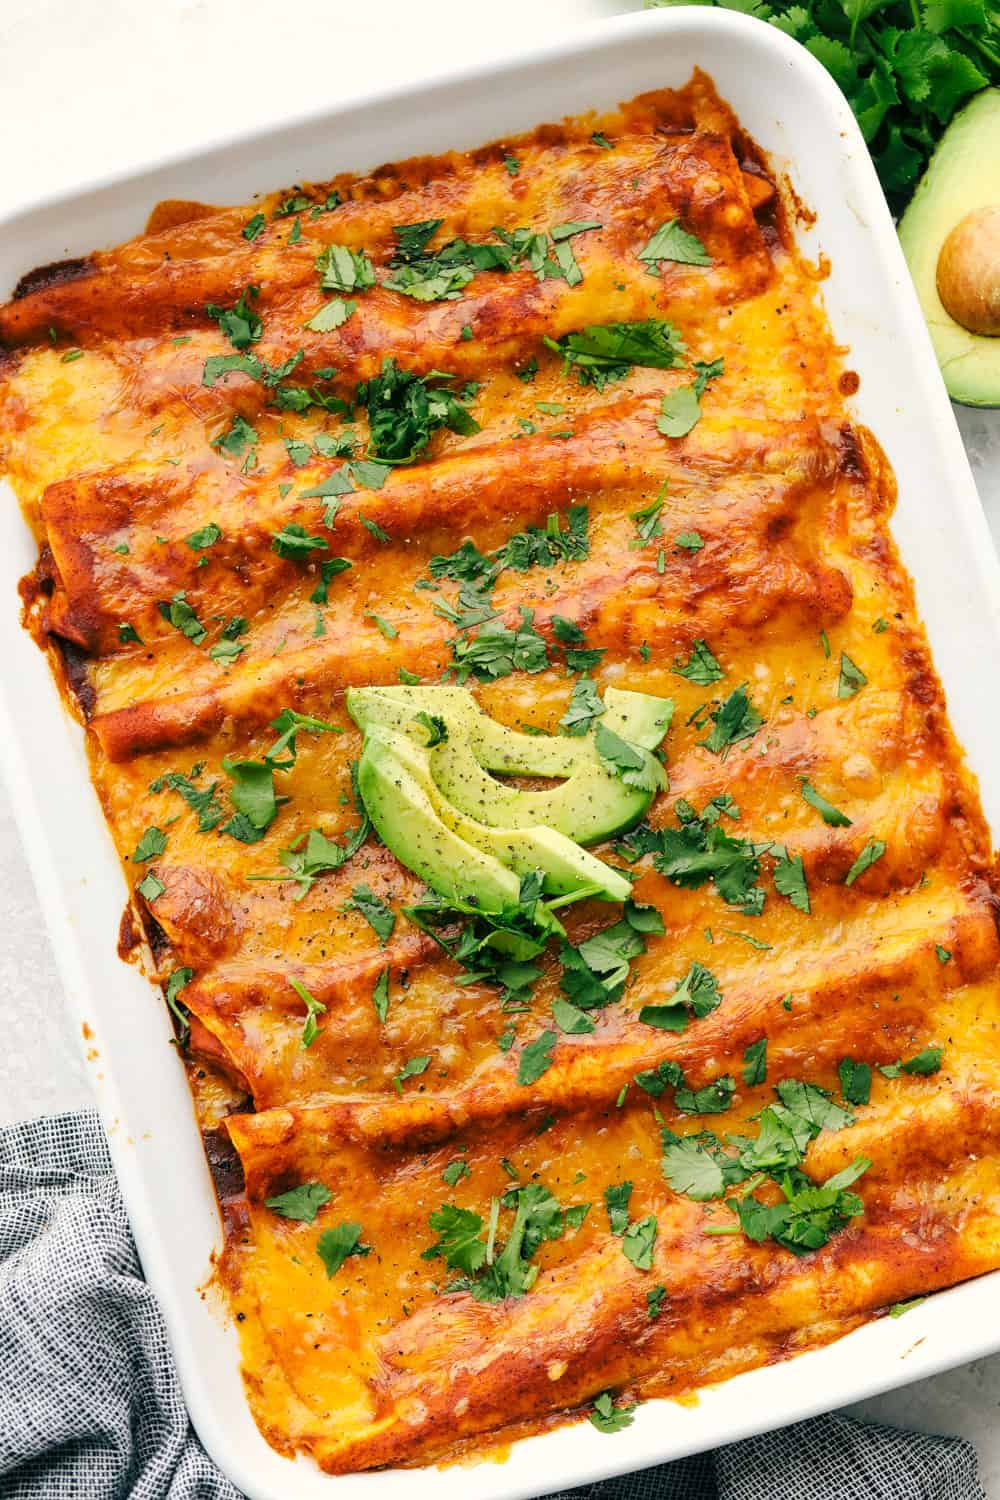 A pan of cheesy chicken enchiladas.